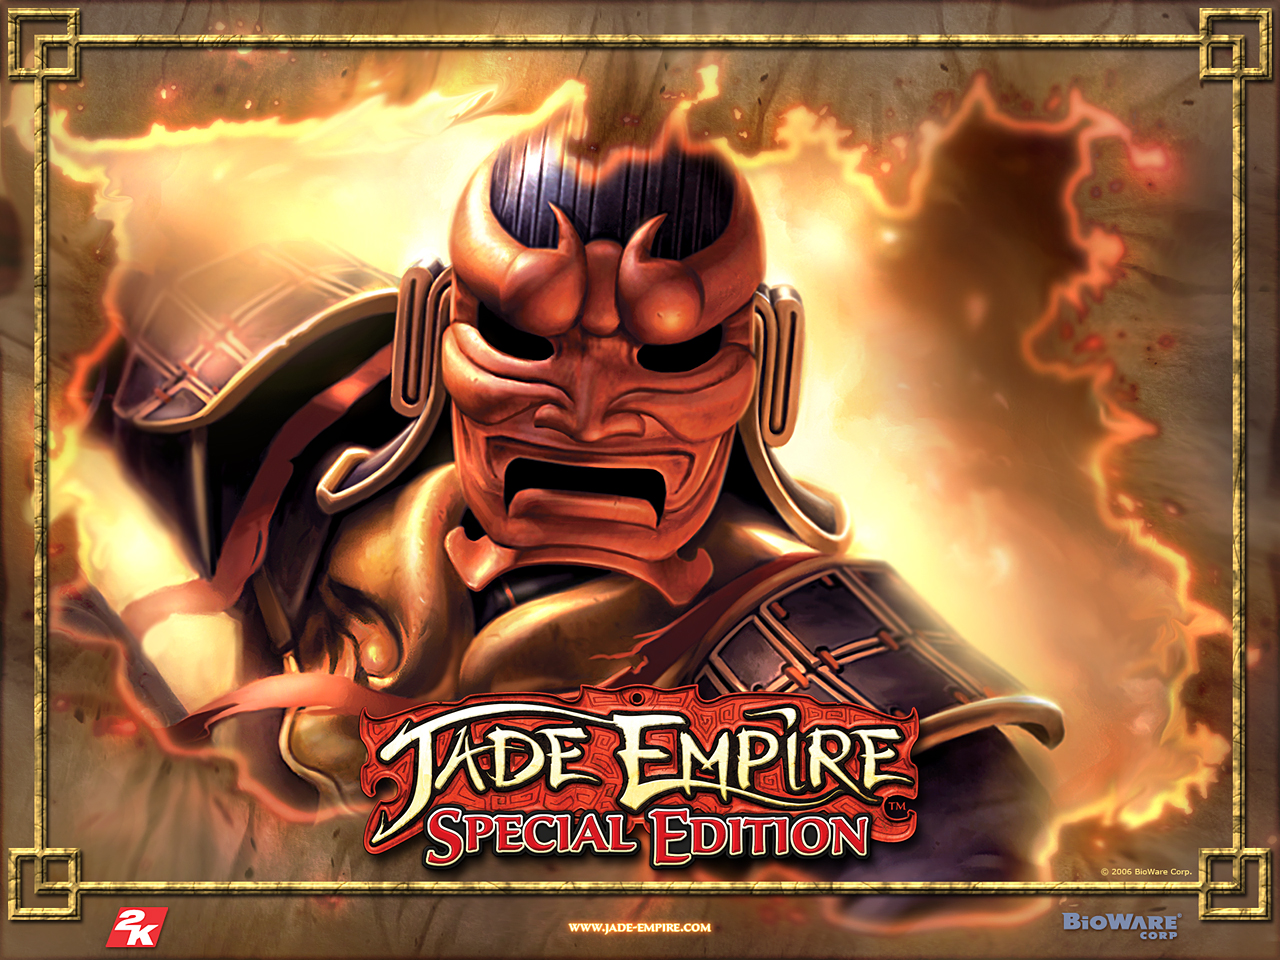 Jade_Empire_06_1280x960.jpg